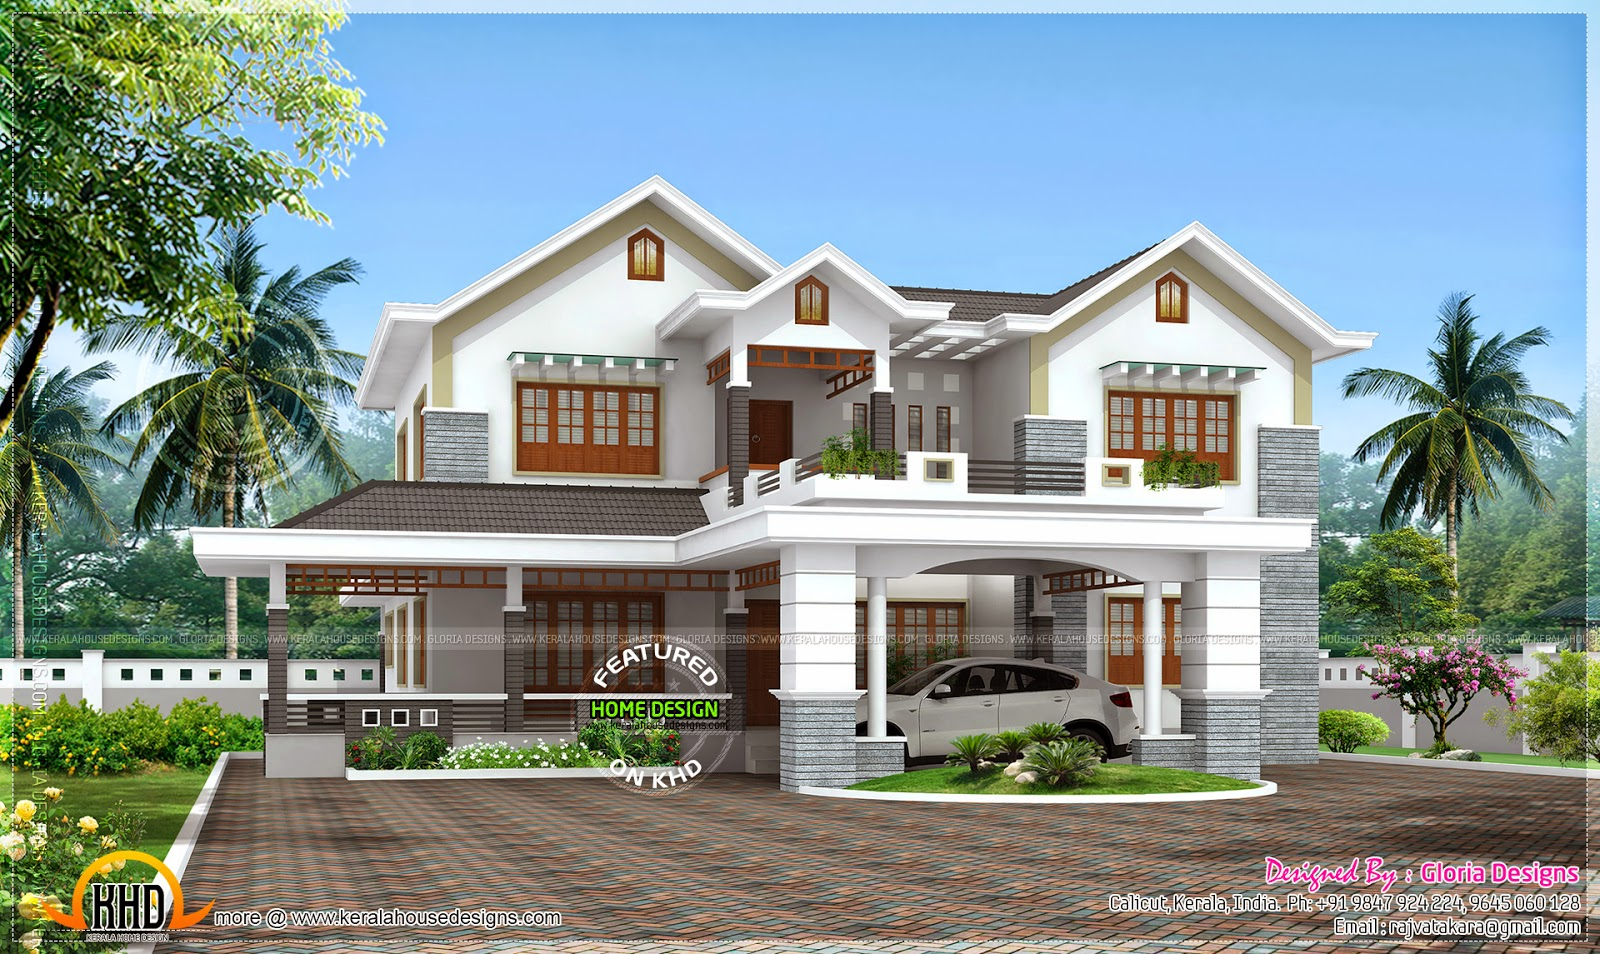 Beautiful 4 bedroom modern house kerala home design and for Beautiful house plans with photos